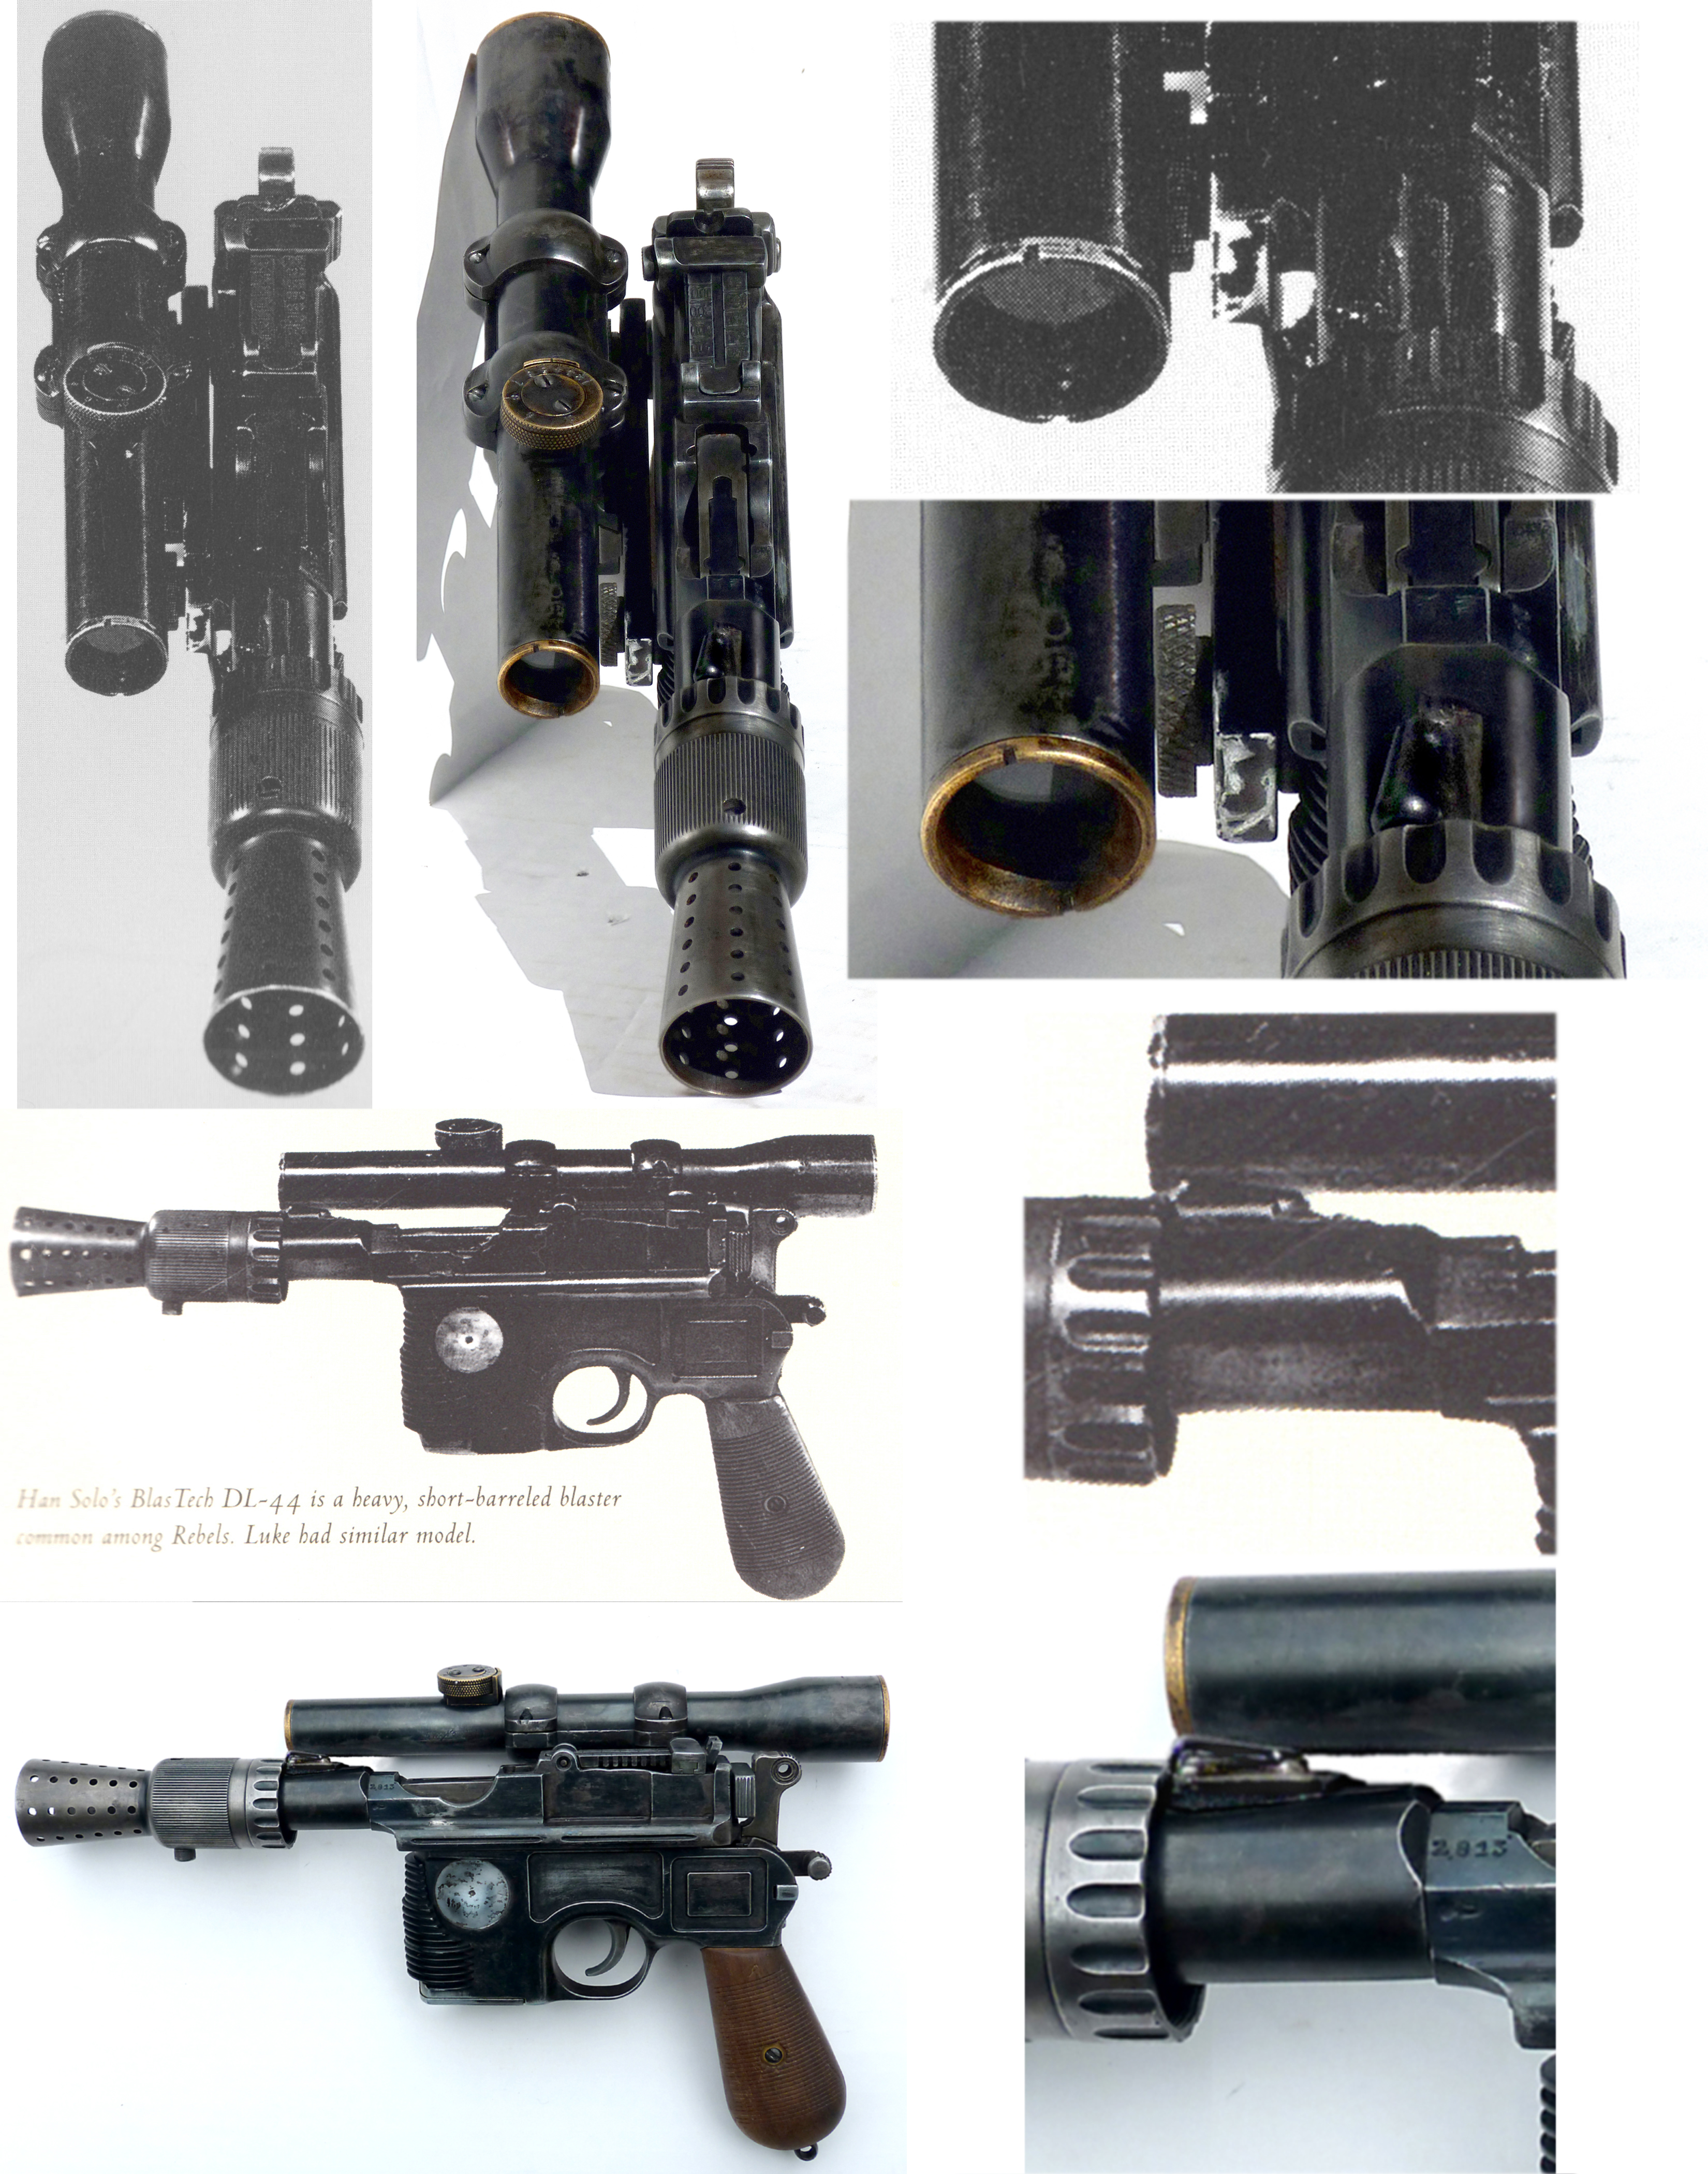 blaster front sight photo proof  - case closed 2copy.jpg